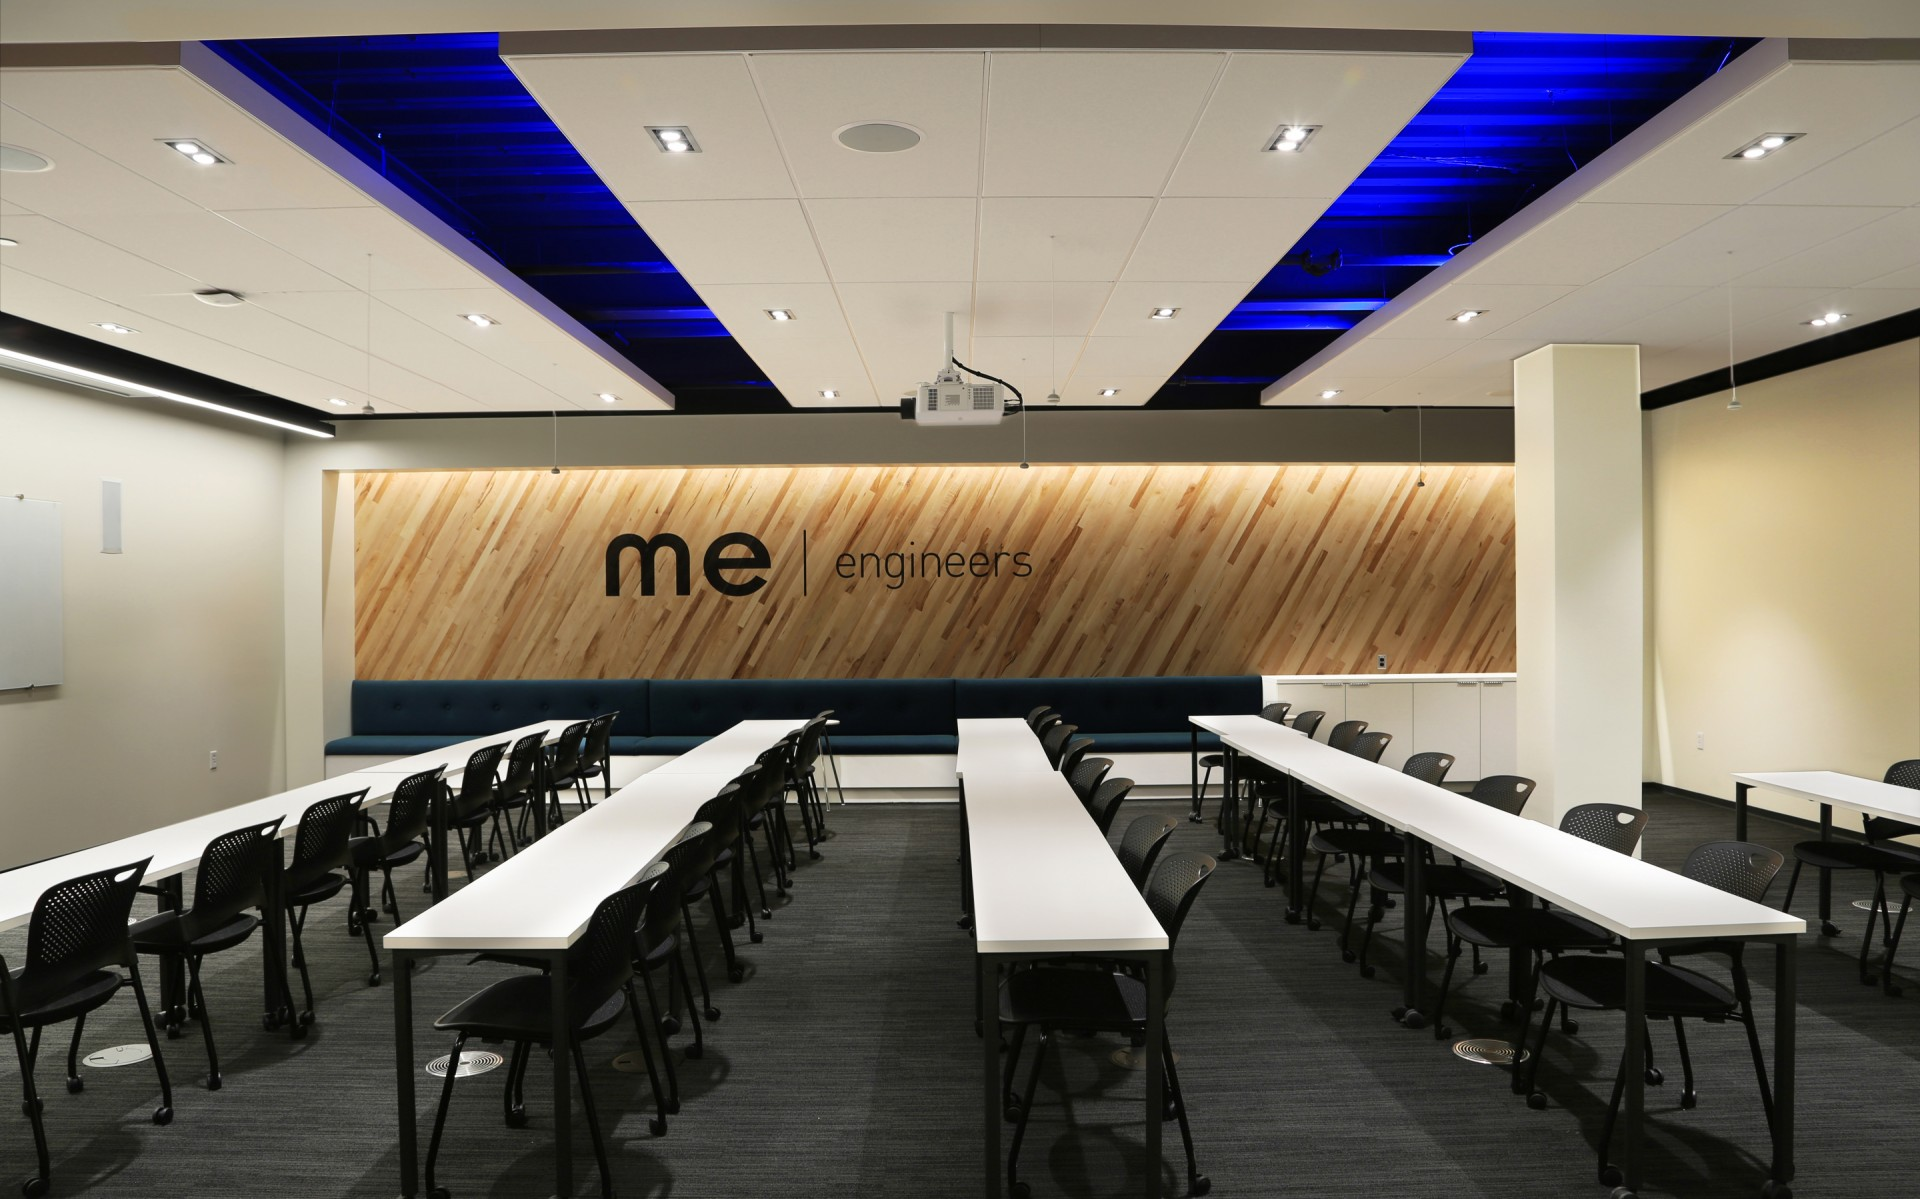 Lighting designers at ME Engineers used Lumenpulse fixtures to help create a flexible, vibrant new office space.